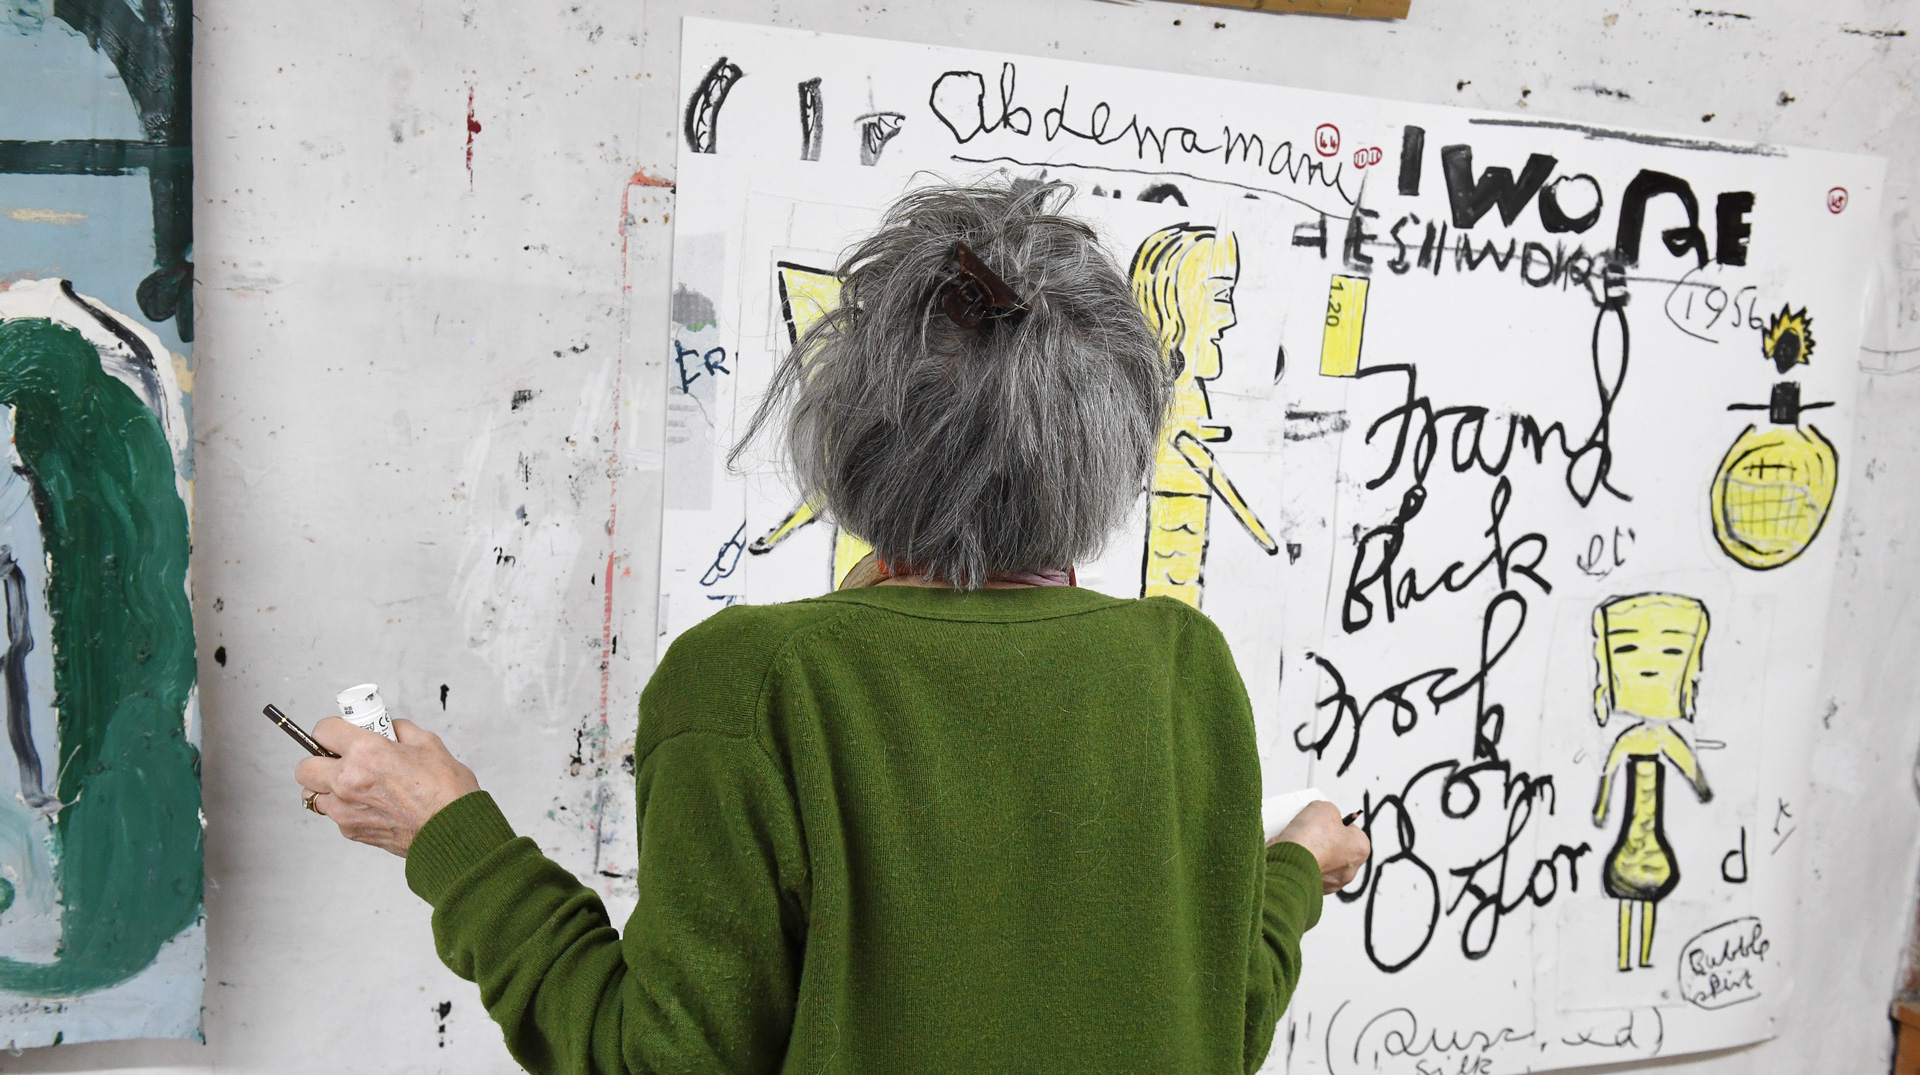 A photo of Rose Wylie at work in her studio, dated 2020.